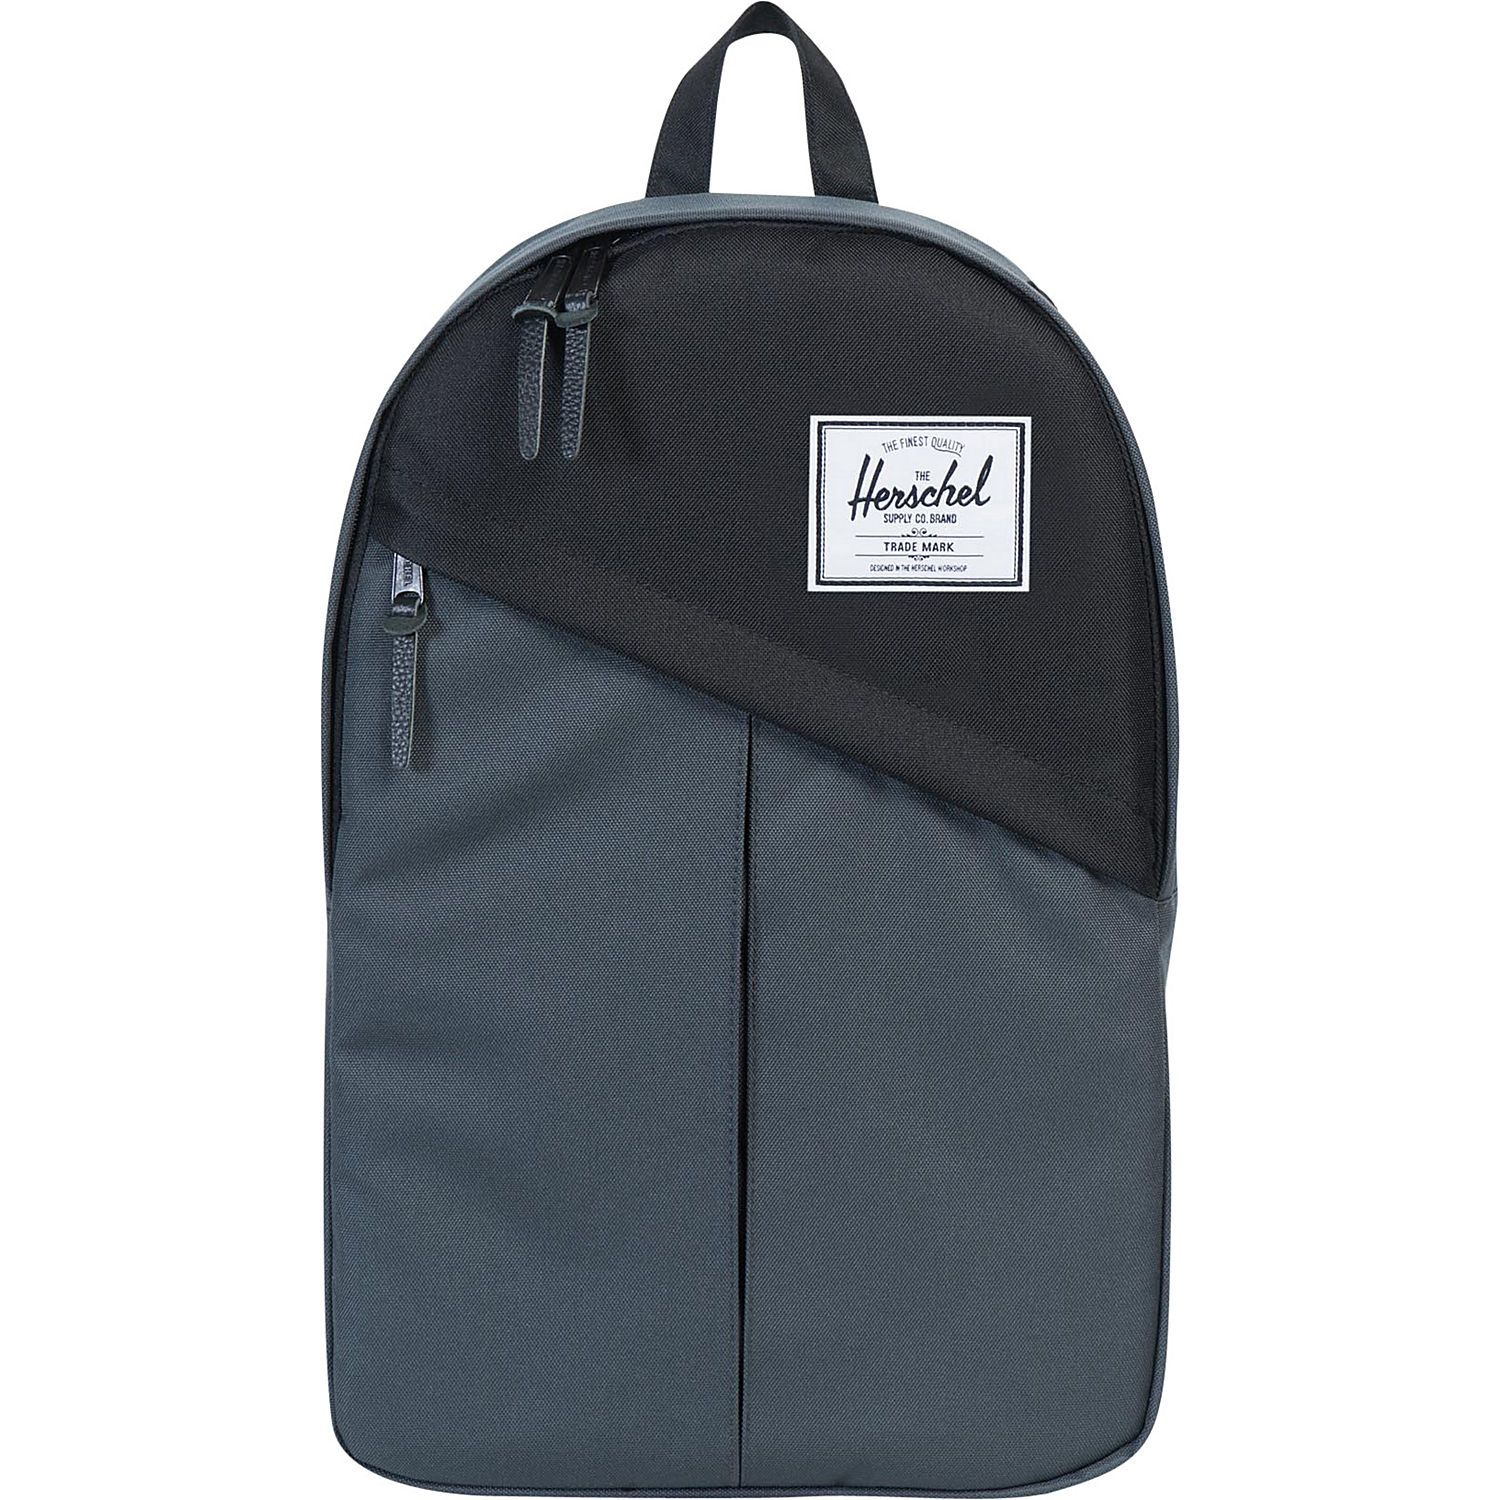 9be711ceca Buy the Herschel Supply Co. Parker Laptop Backpack at eBags - With a sleek  and…